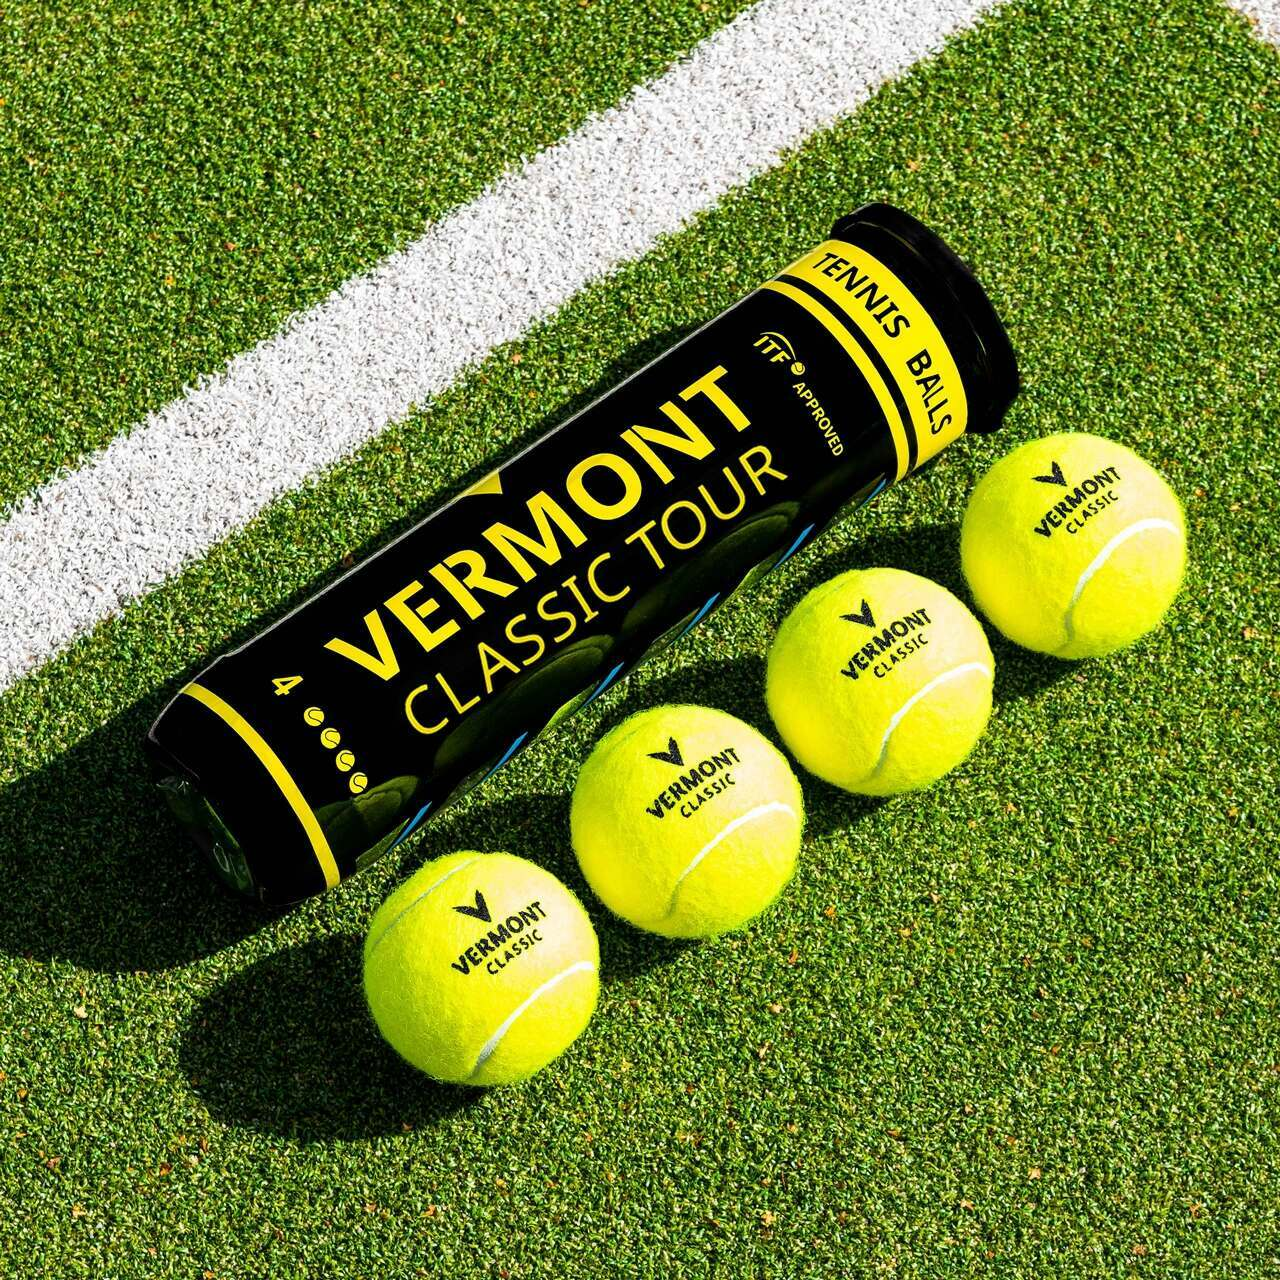 Vermont Classic Tour Tennis Balls [4 Ball Cans]